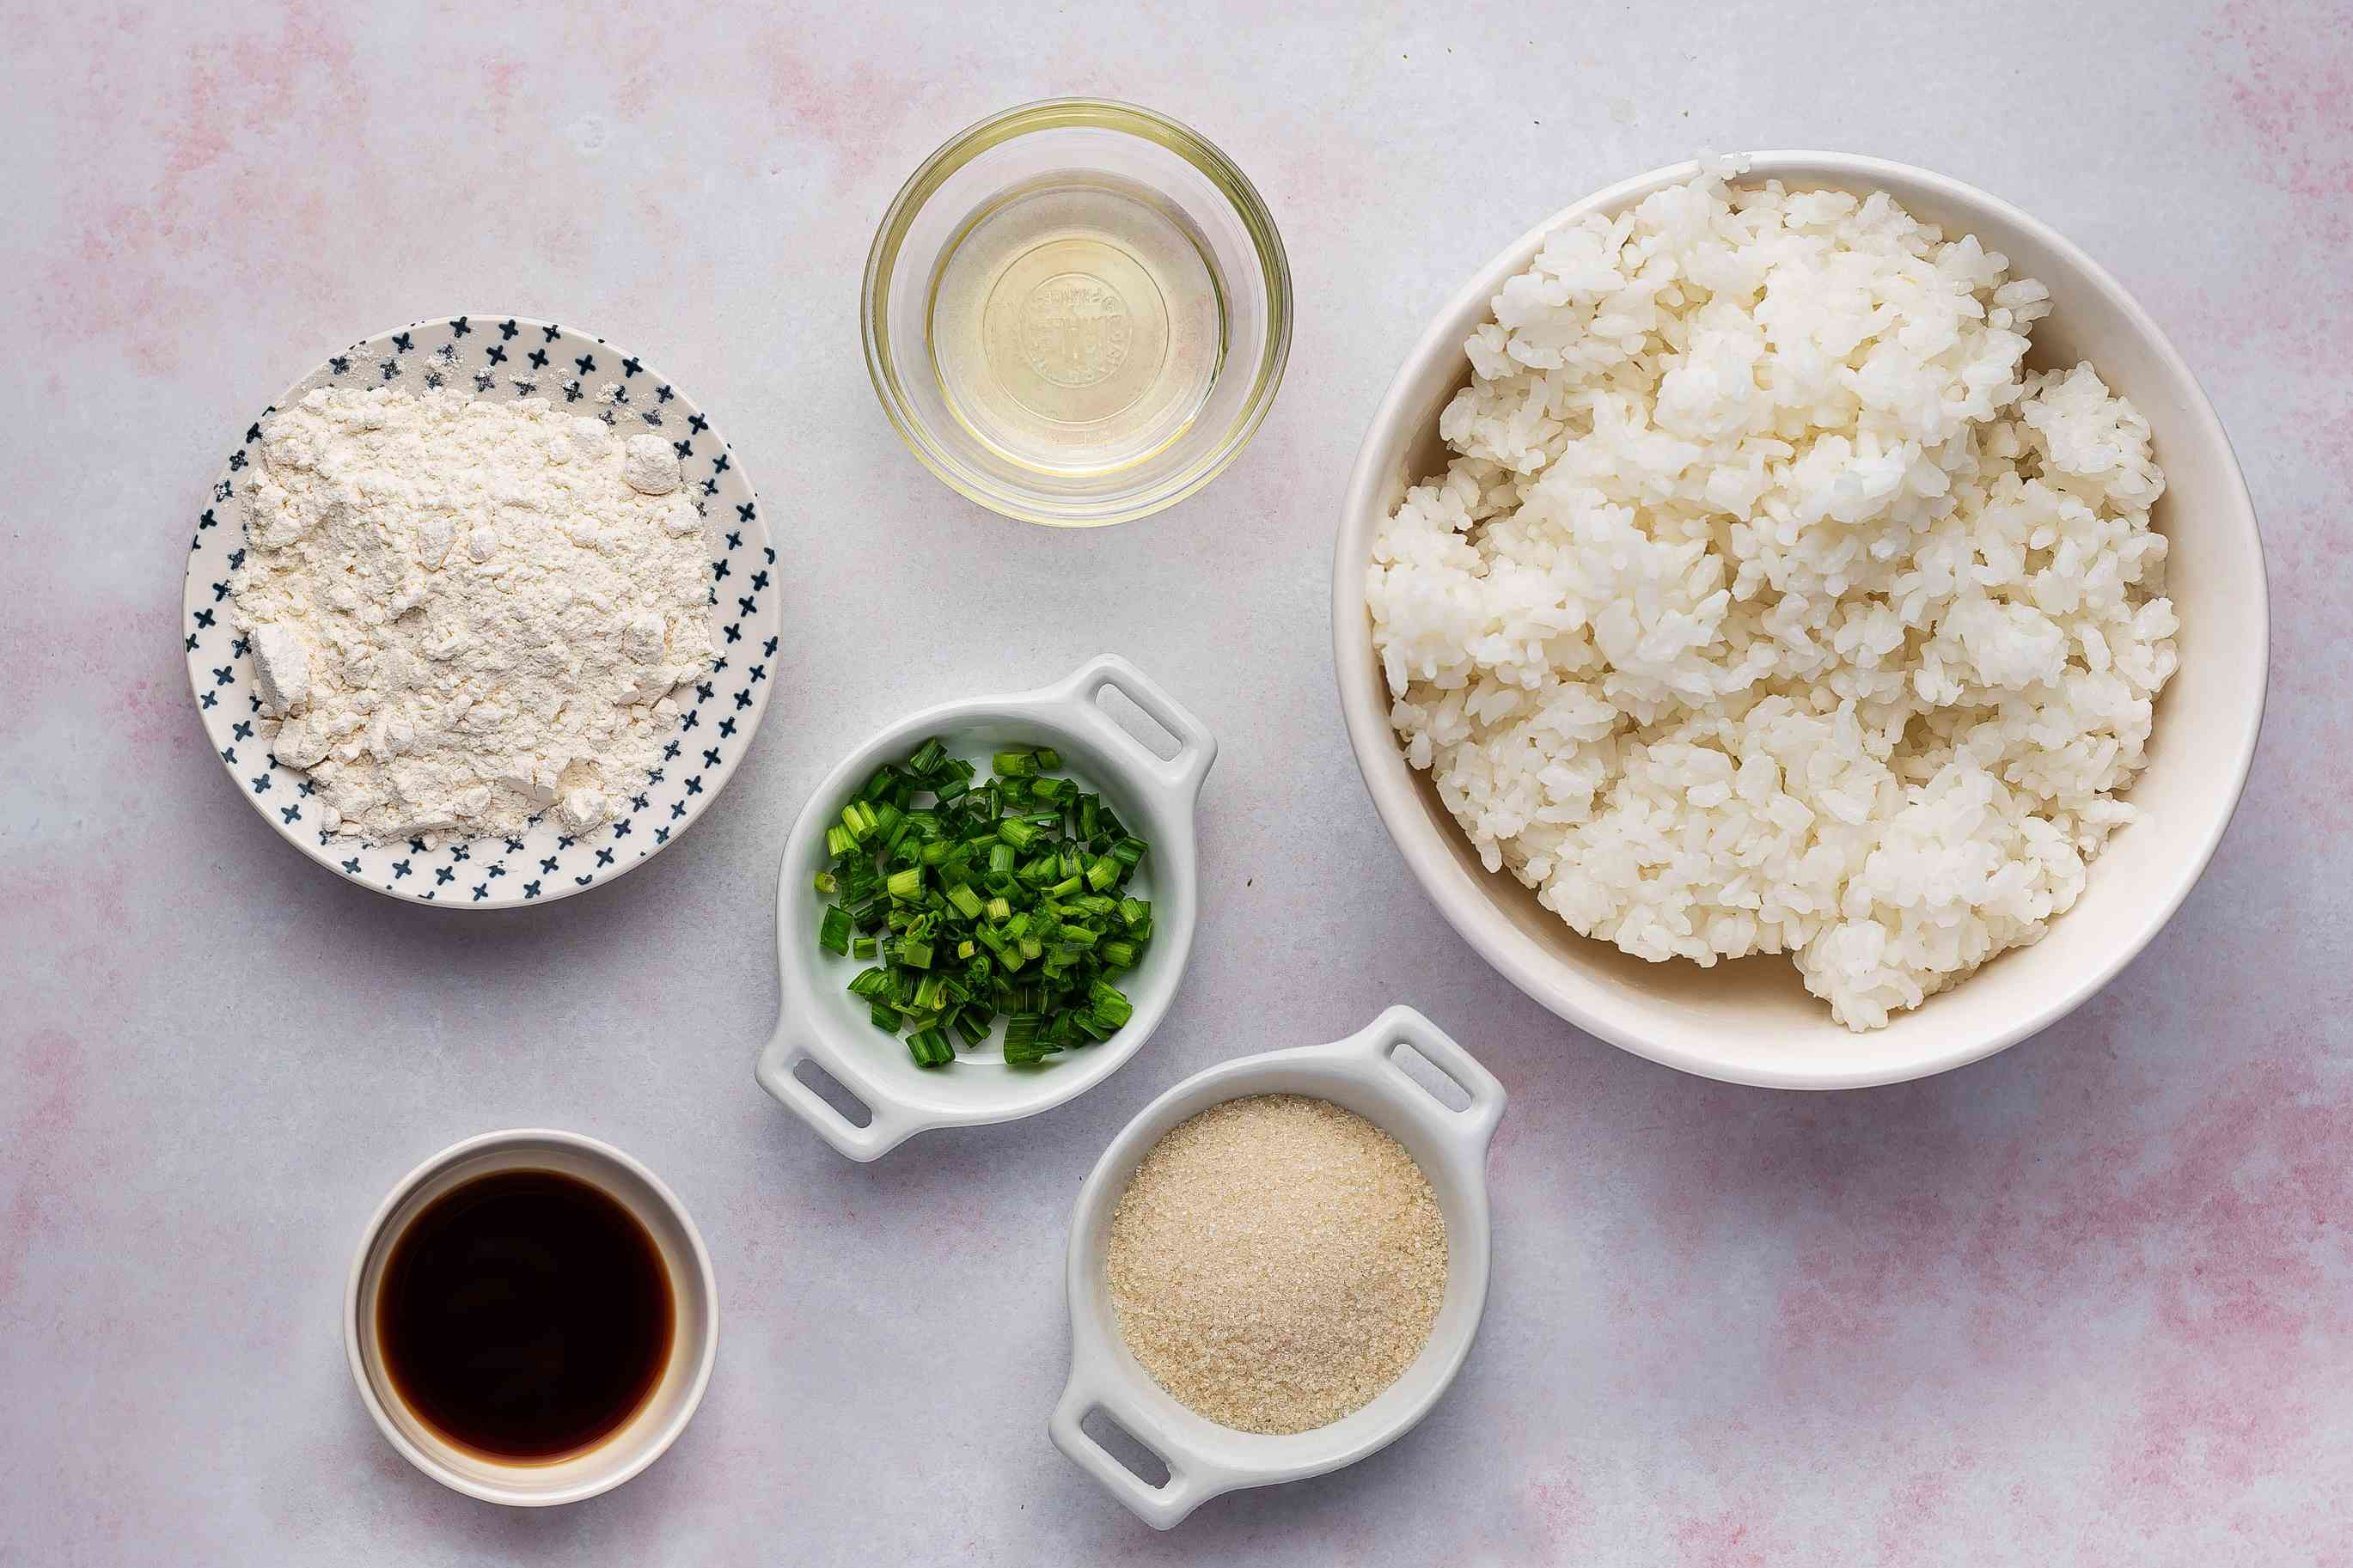 Ingredients for rice cakes